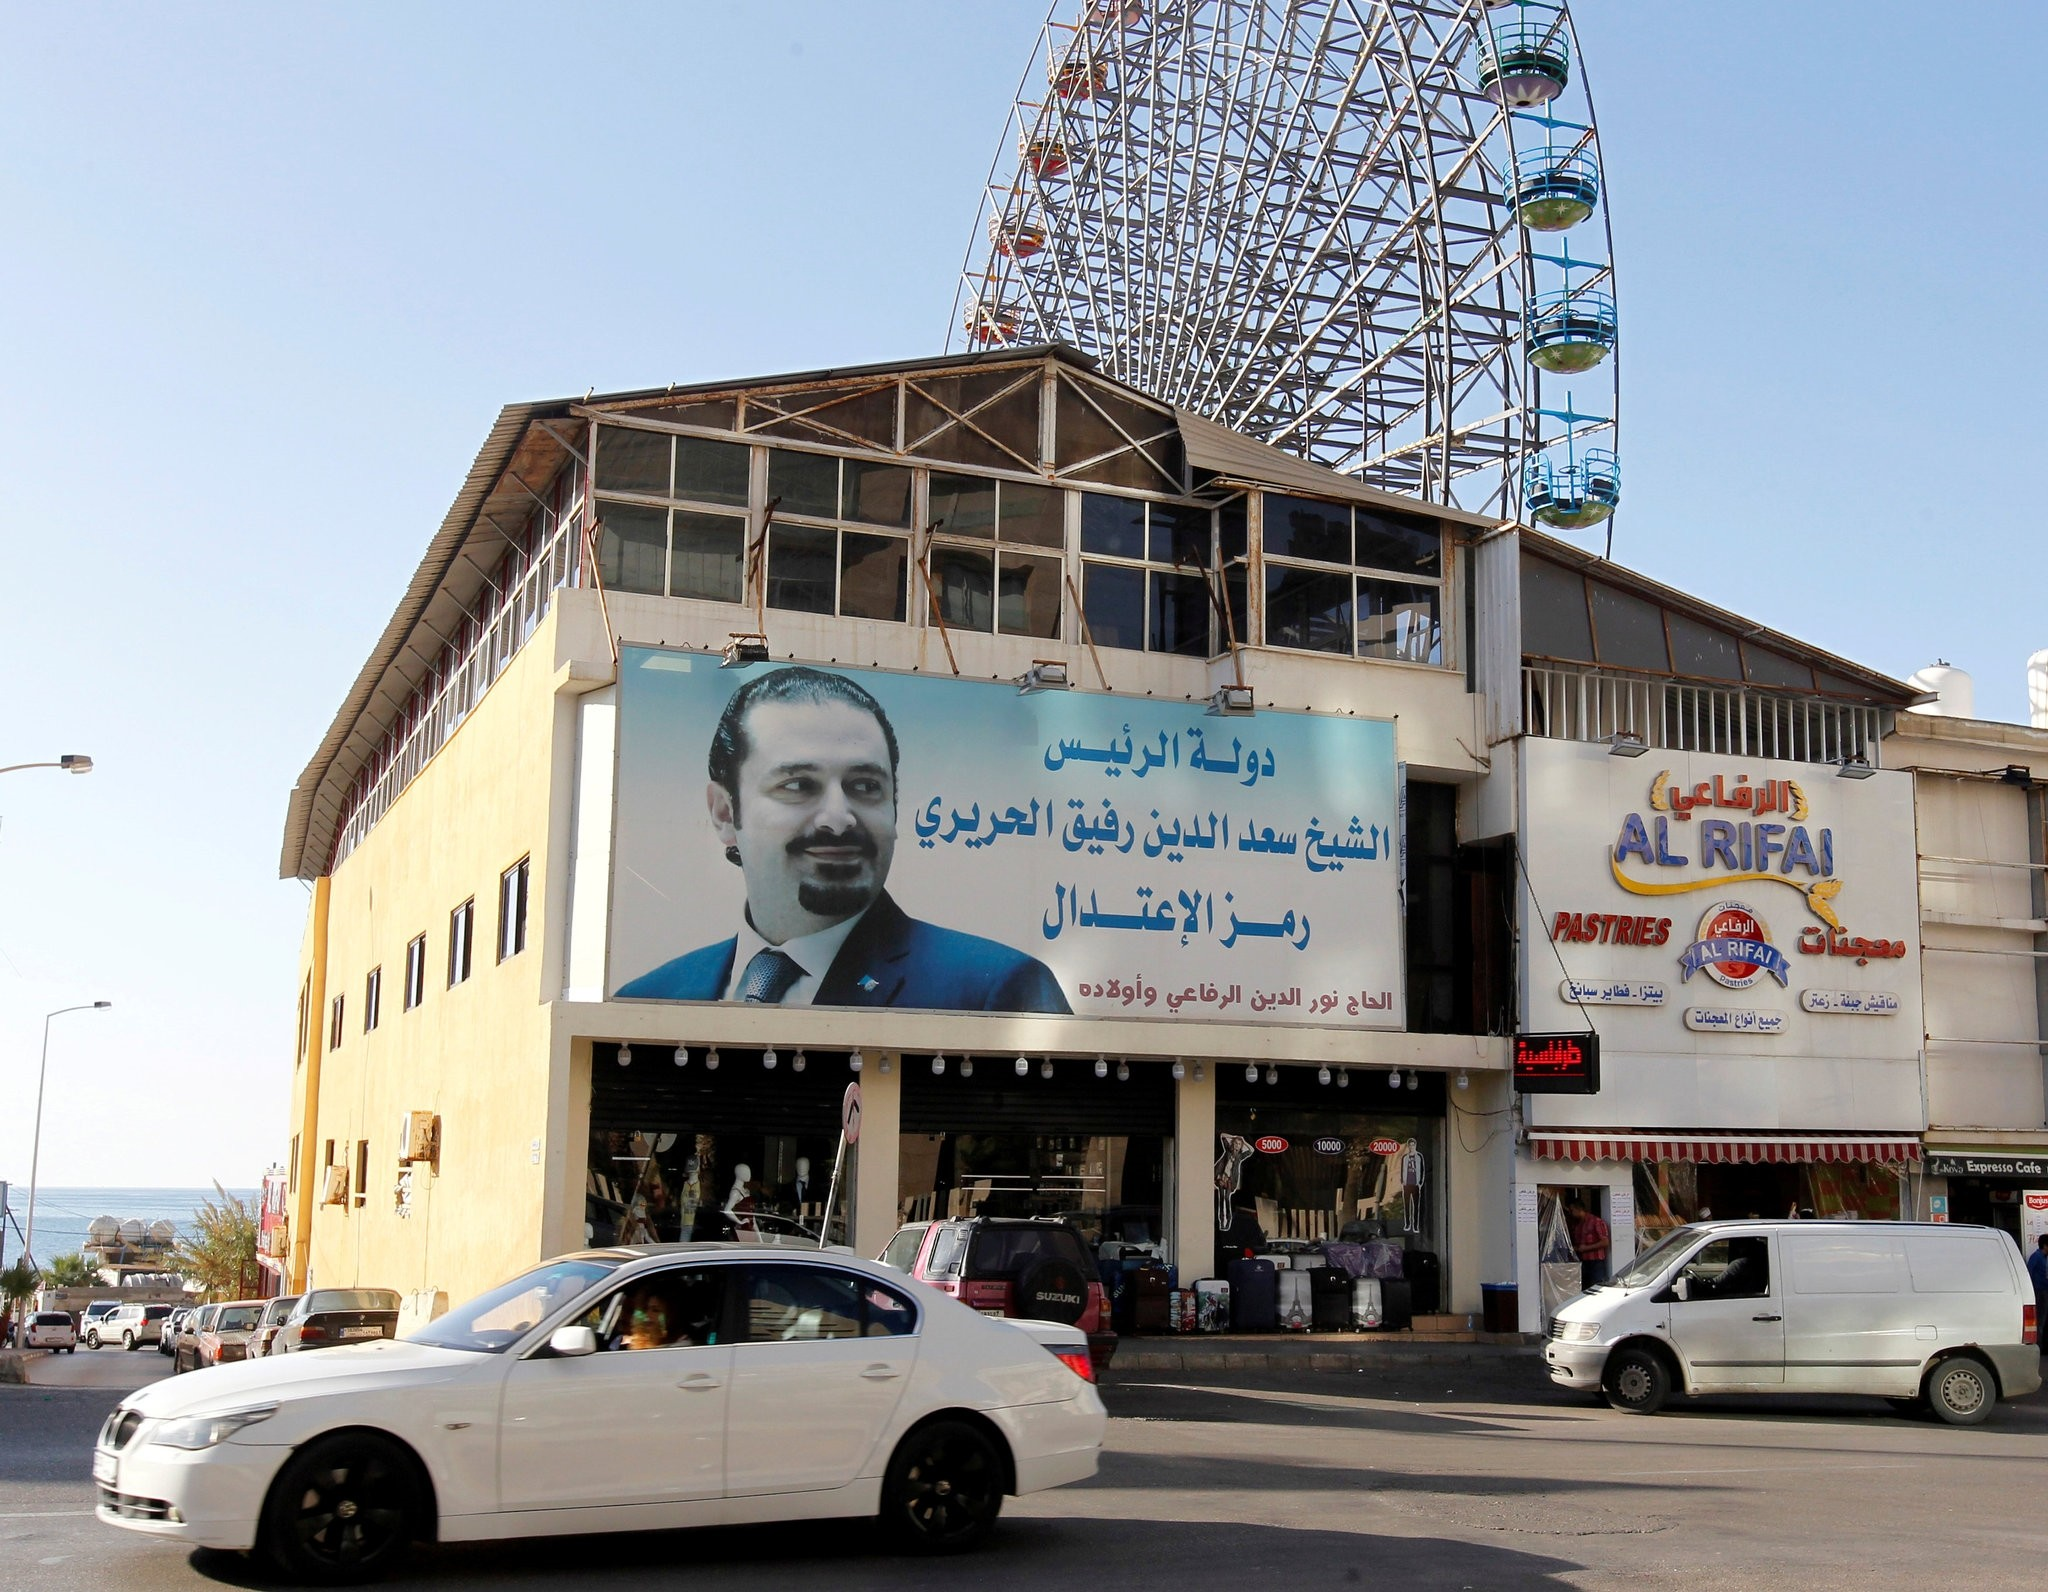 Picture depicting Lebanon's Prime Minister Saad al-Hariri, who has resigned from his post, is seen in Beirut, Lebanon November 10, 2017. (REUTERS Photo)